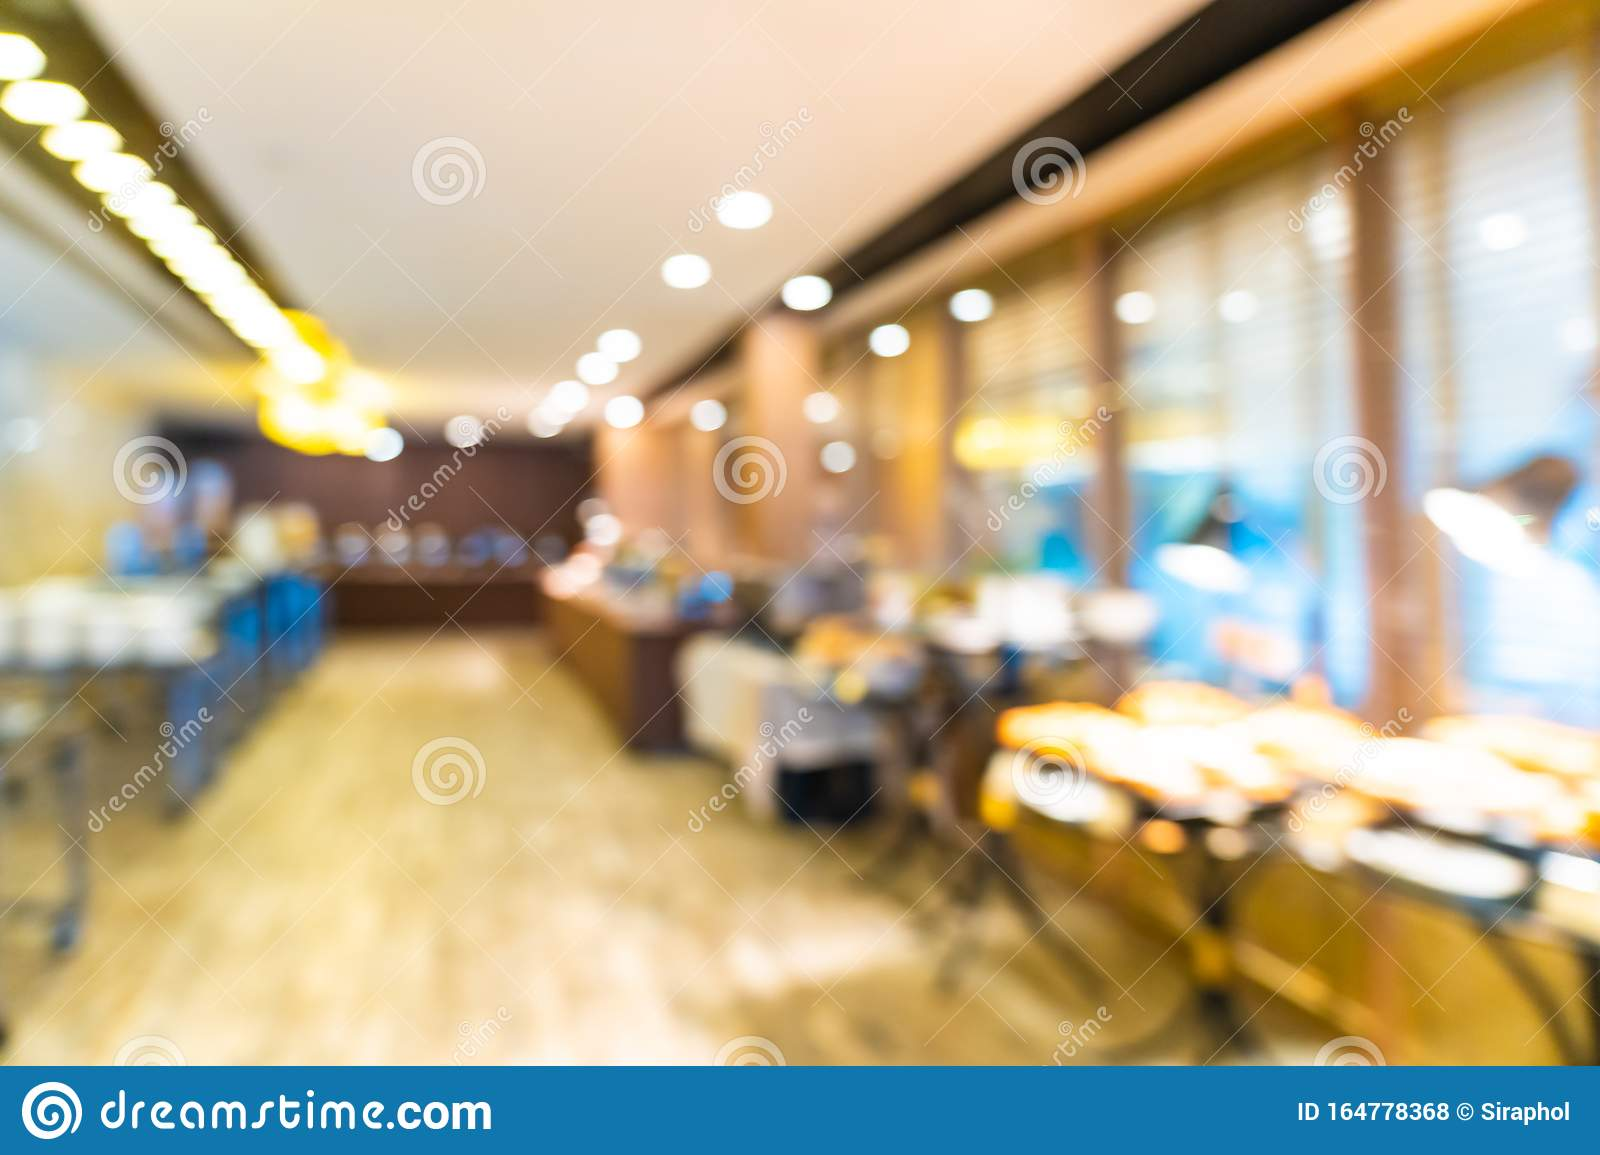 Abstract Blur Coffee Shop Cafe And Restaurant Interior For Background Stock Photo Image Of Mall Chair 164778368